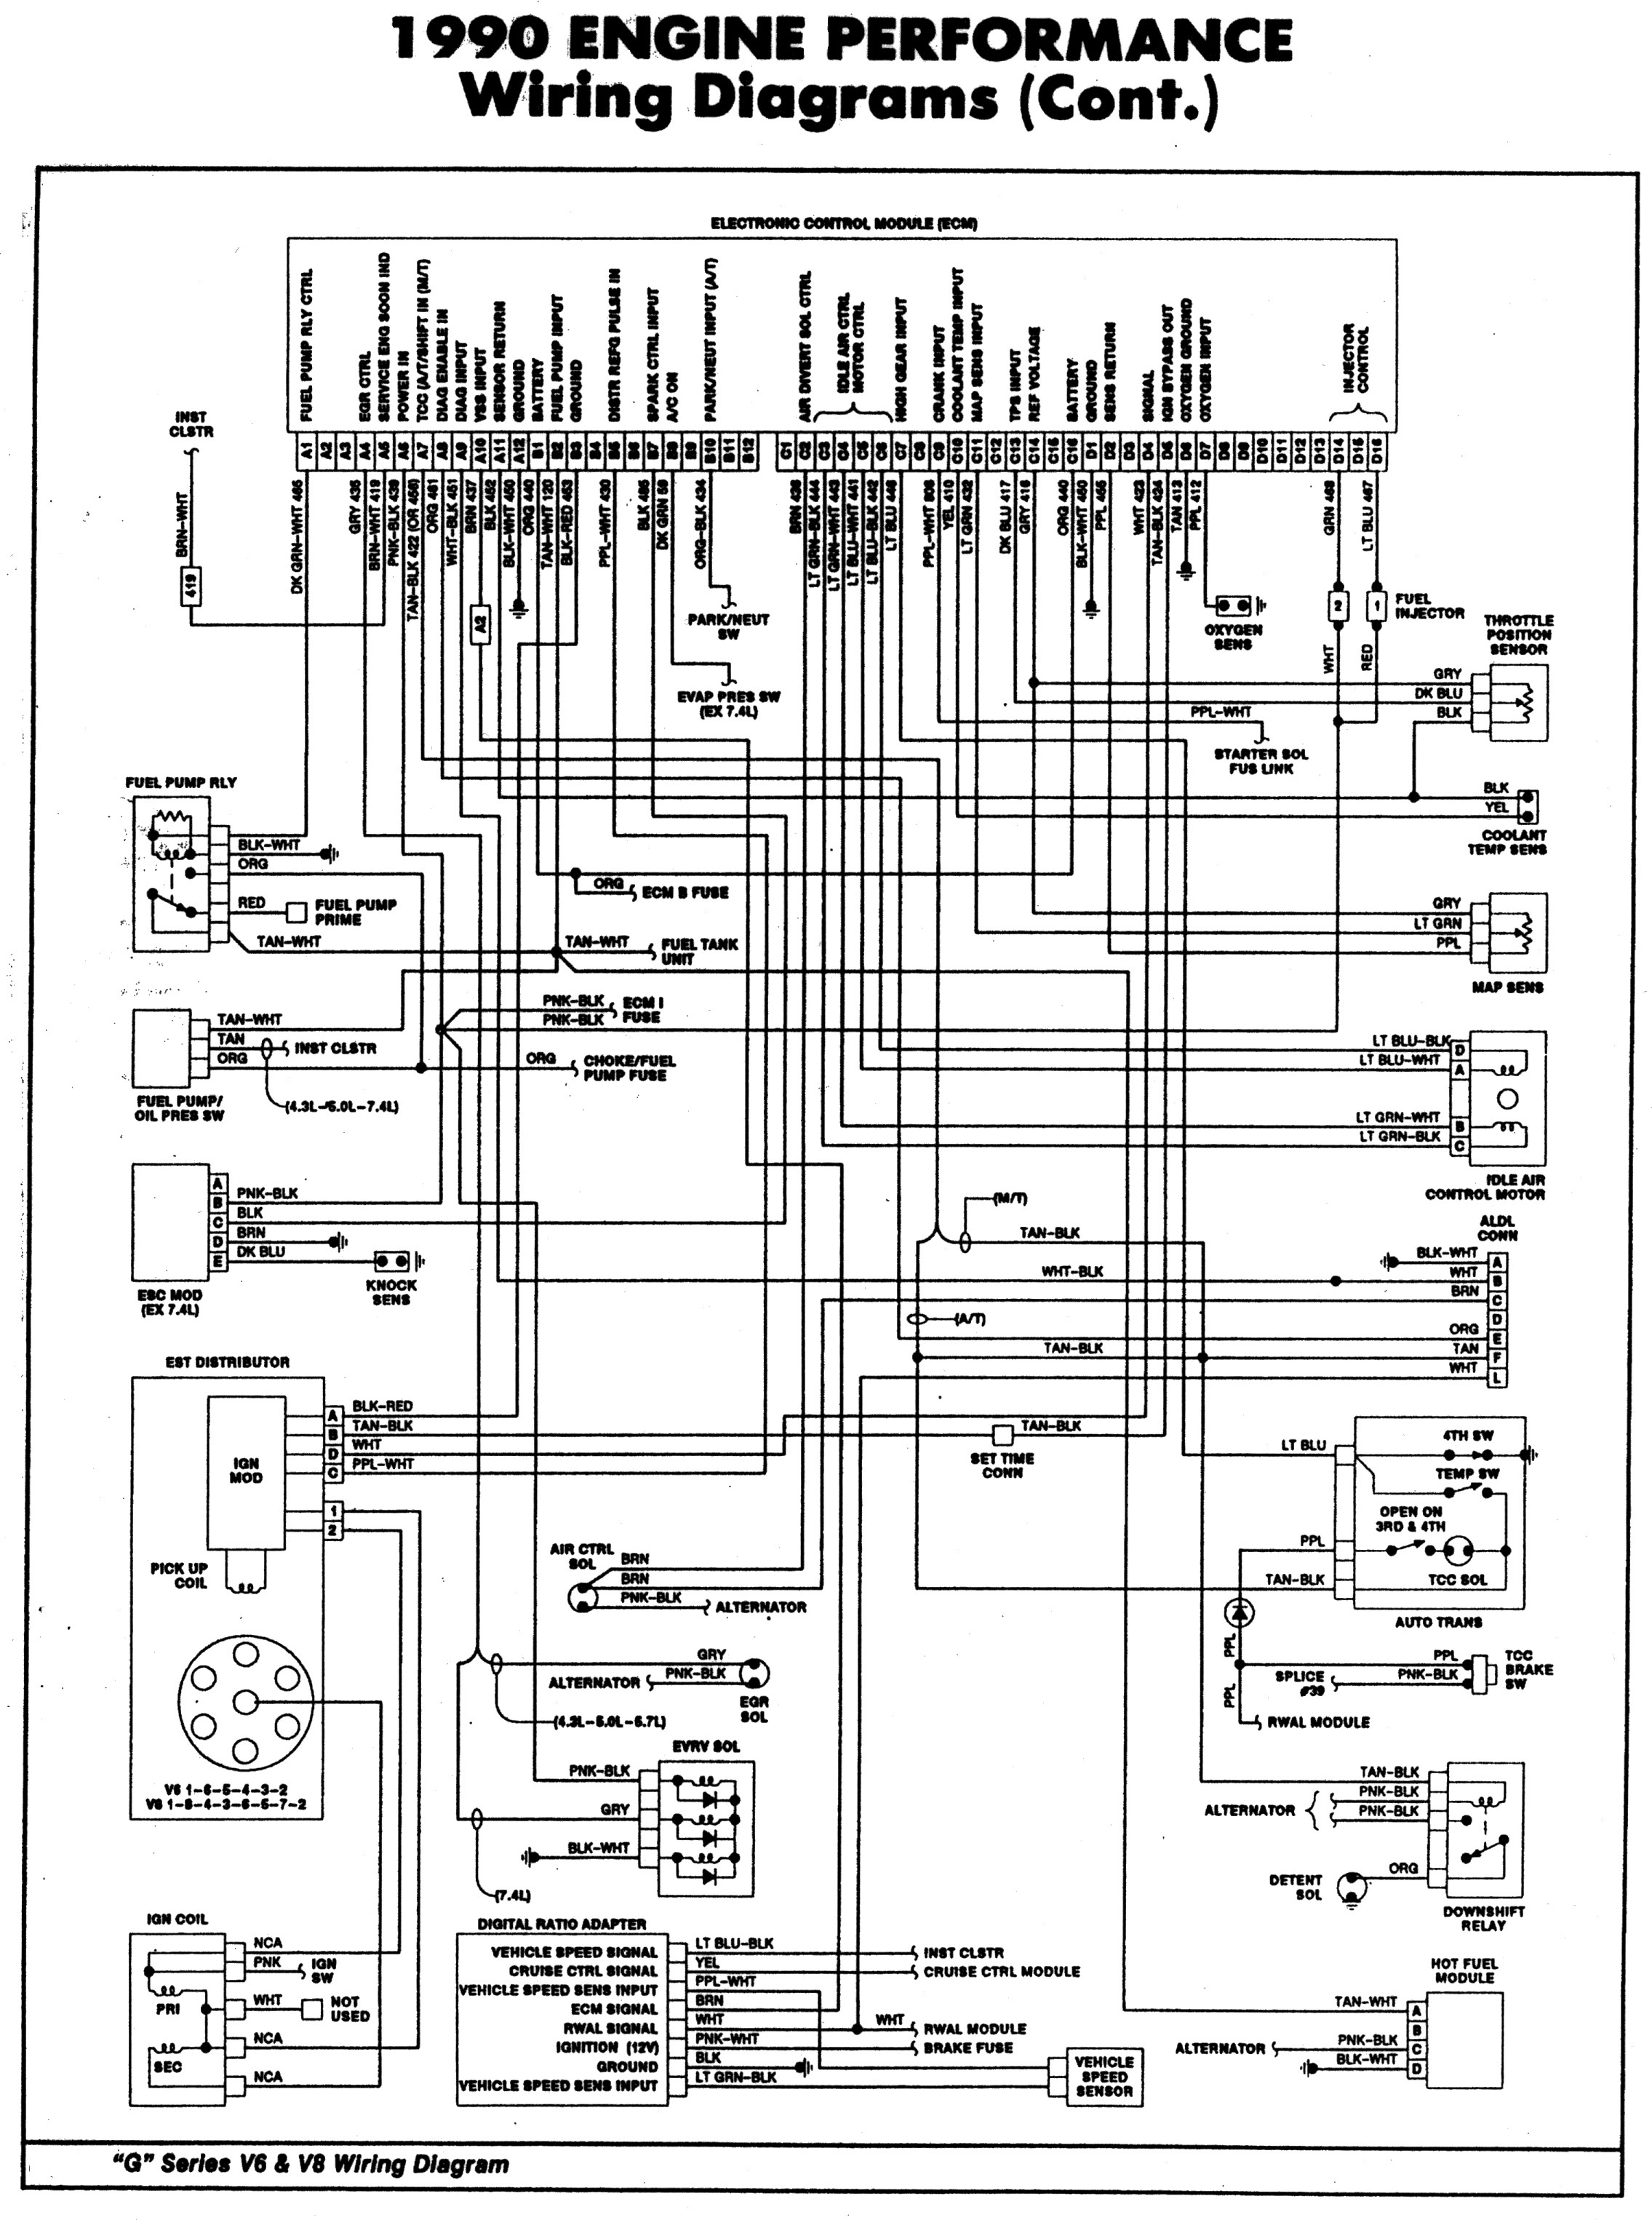 1990 chevy rv wiring diagram wiring diagram home 1990 chevy rv wiring diagram [ 2271 x 3051 Pixel ]